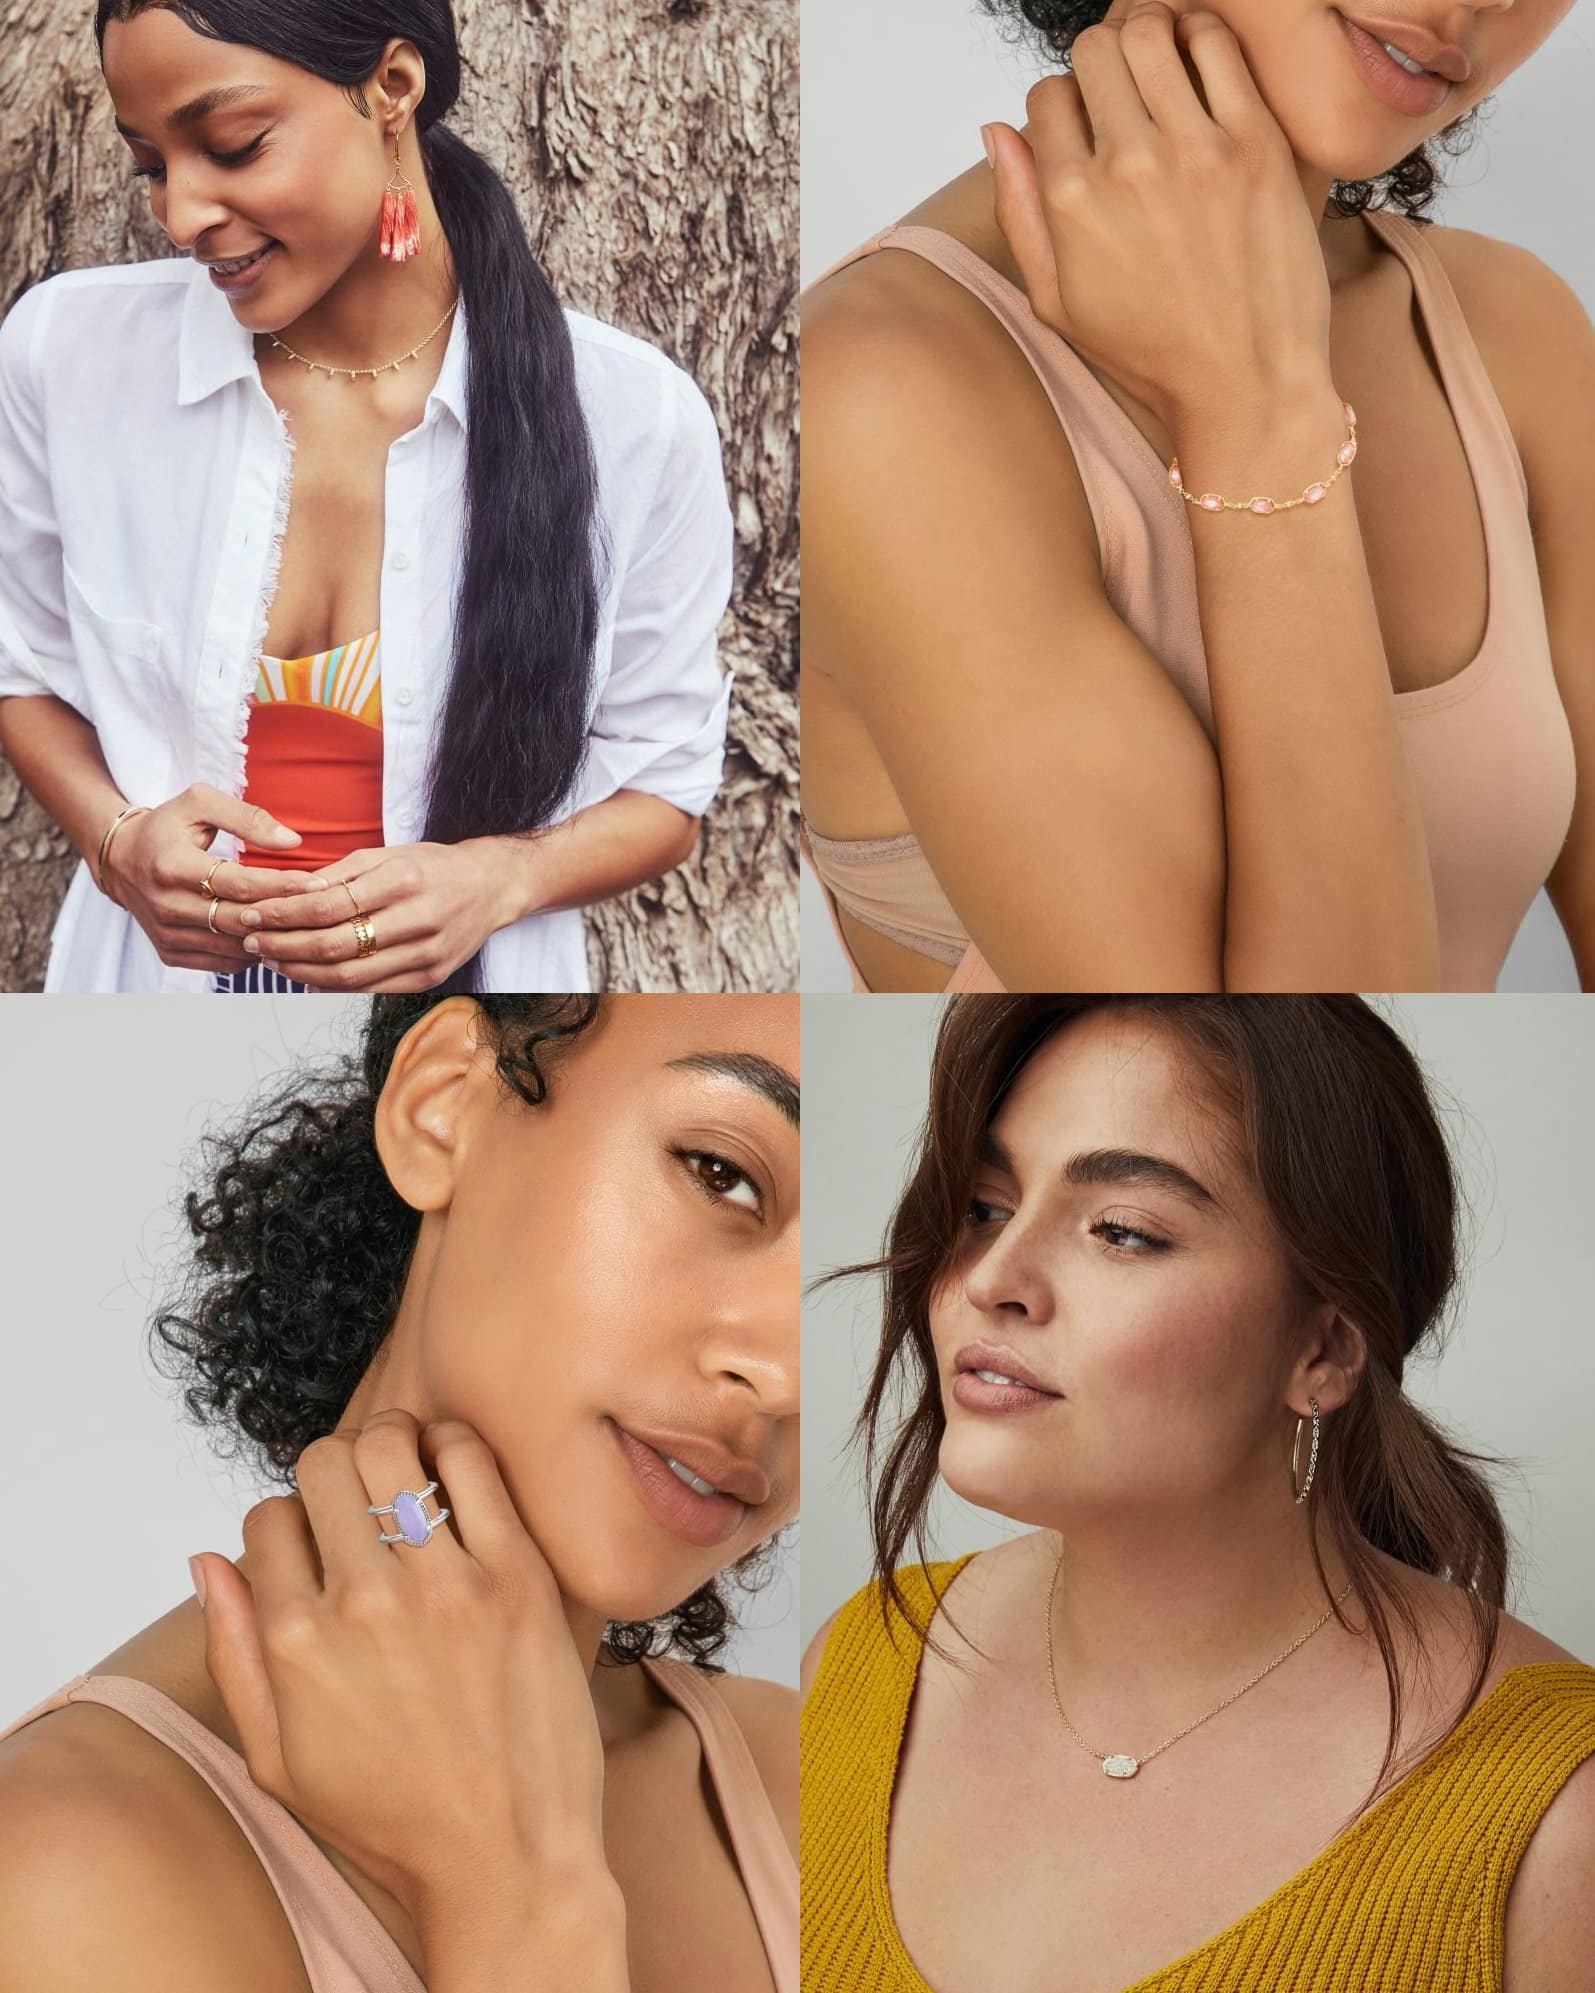 Kendra Scott Layton Gold Statement Earrings in Red Oyster, $128; Kendra Scott Emilie Gold Chain Bracelet in Rose Mother of Pearl, $68; Kendra Scott Elyse Double Band Ring in Matte Iridescent Lilac Glass, $60; Kendra Scott Elisa Silver Pendant Necklace in Iridescent Drusy, $68